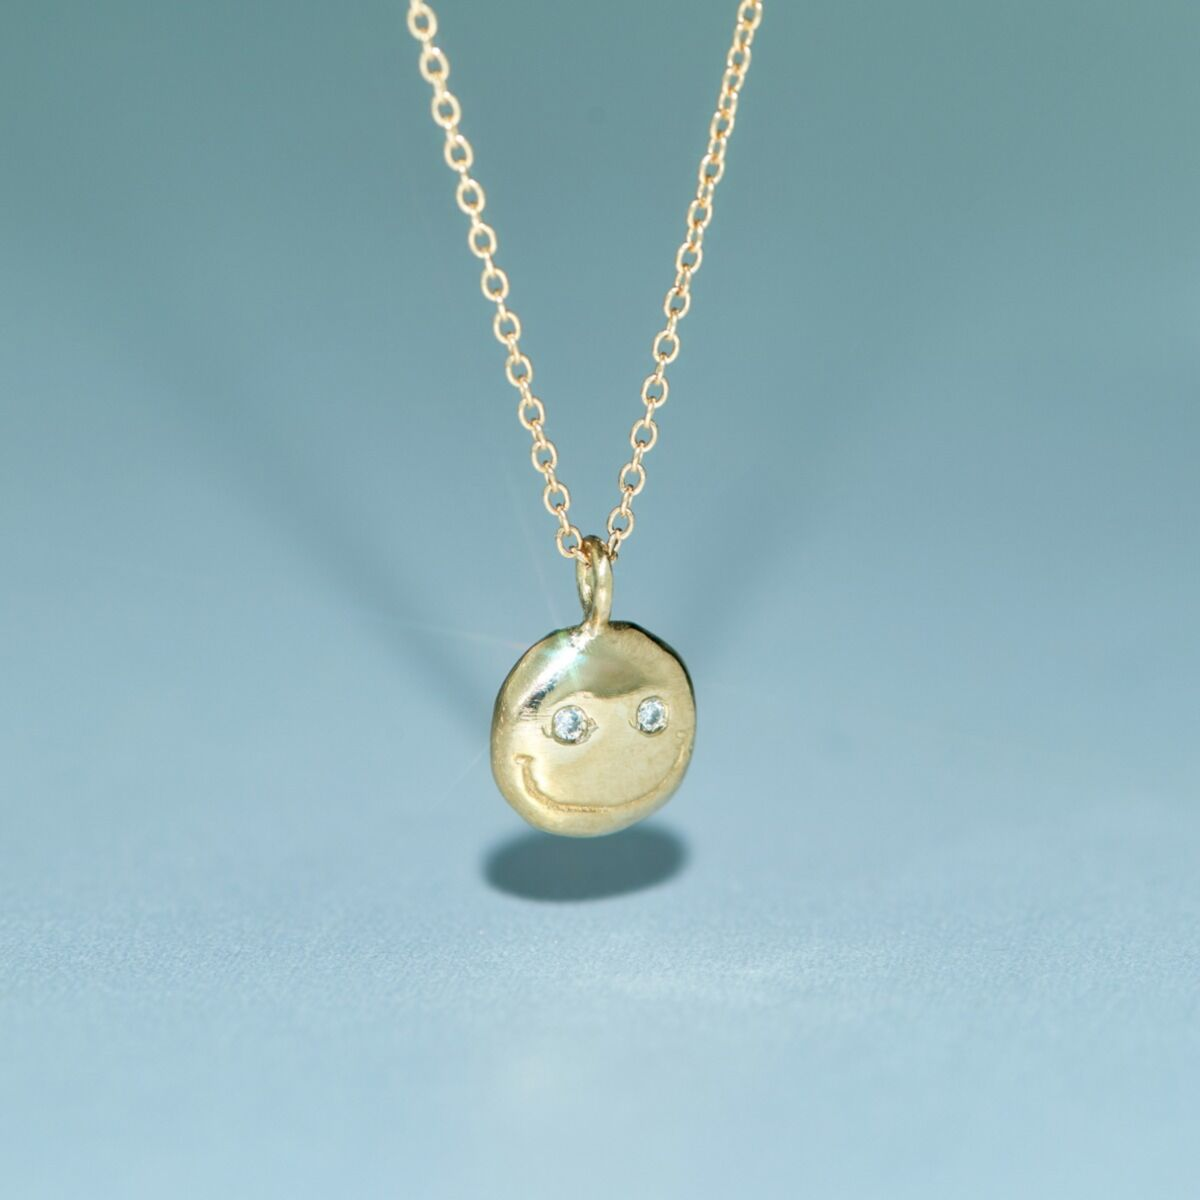 Smiley Face Necklace image